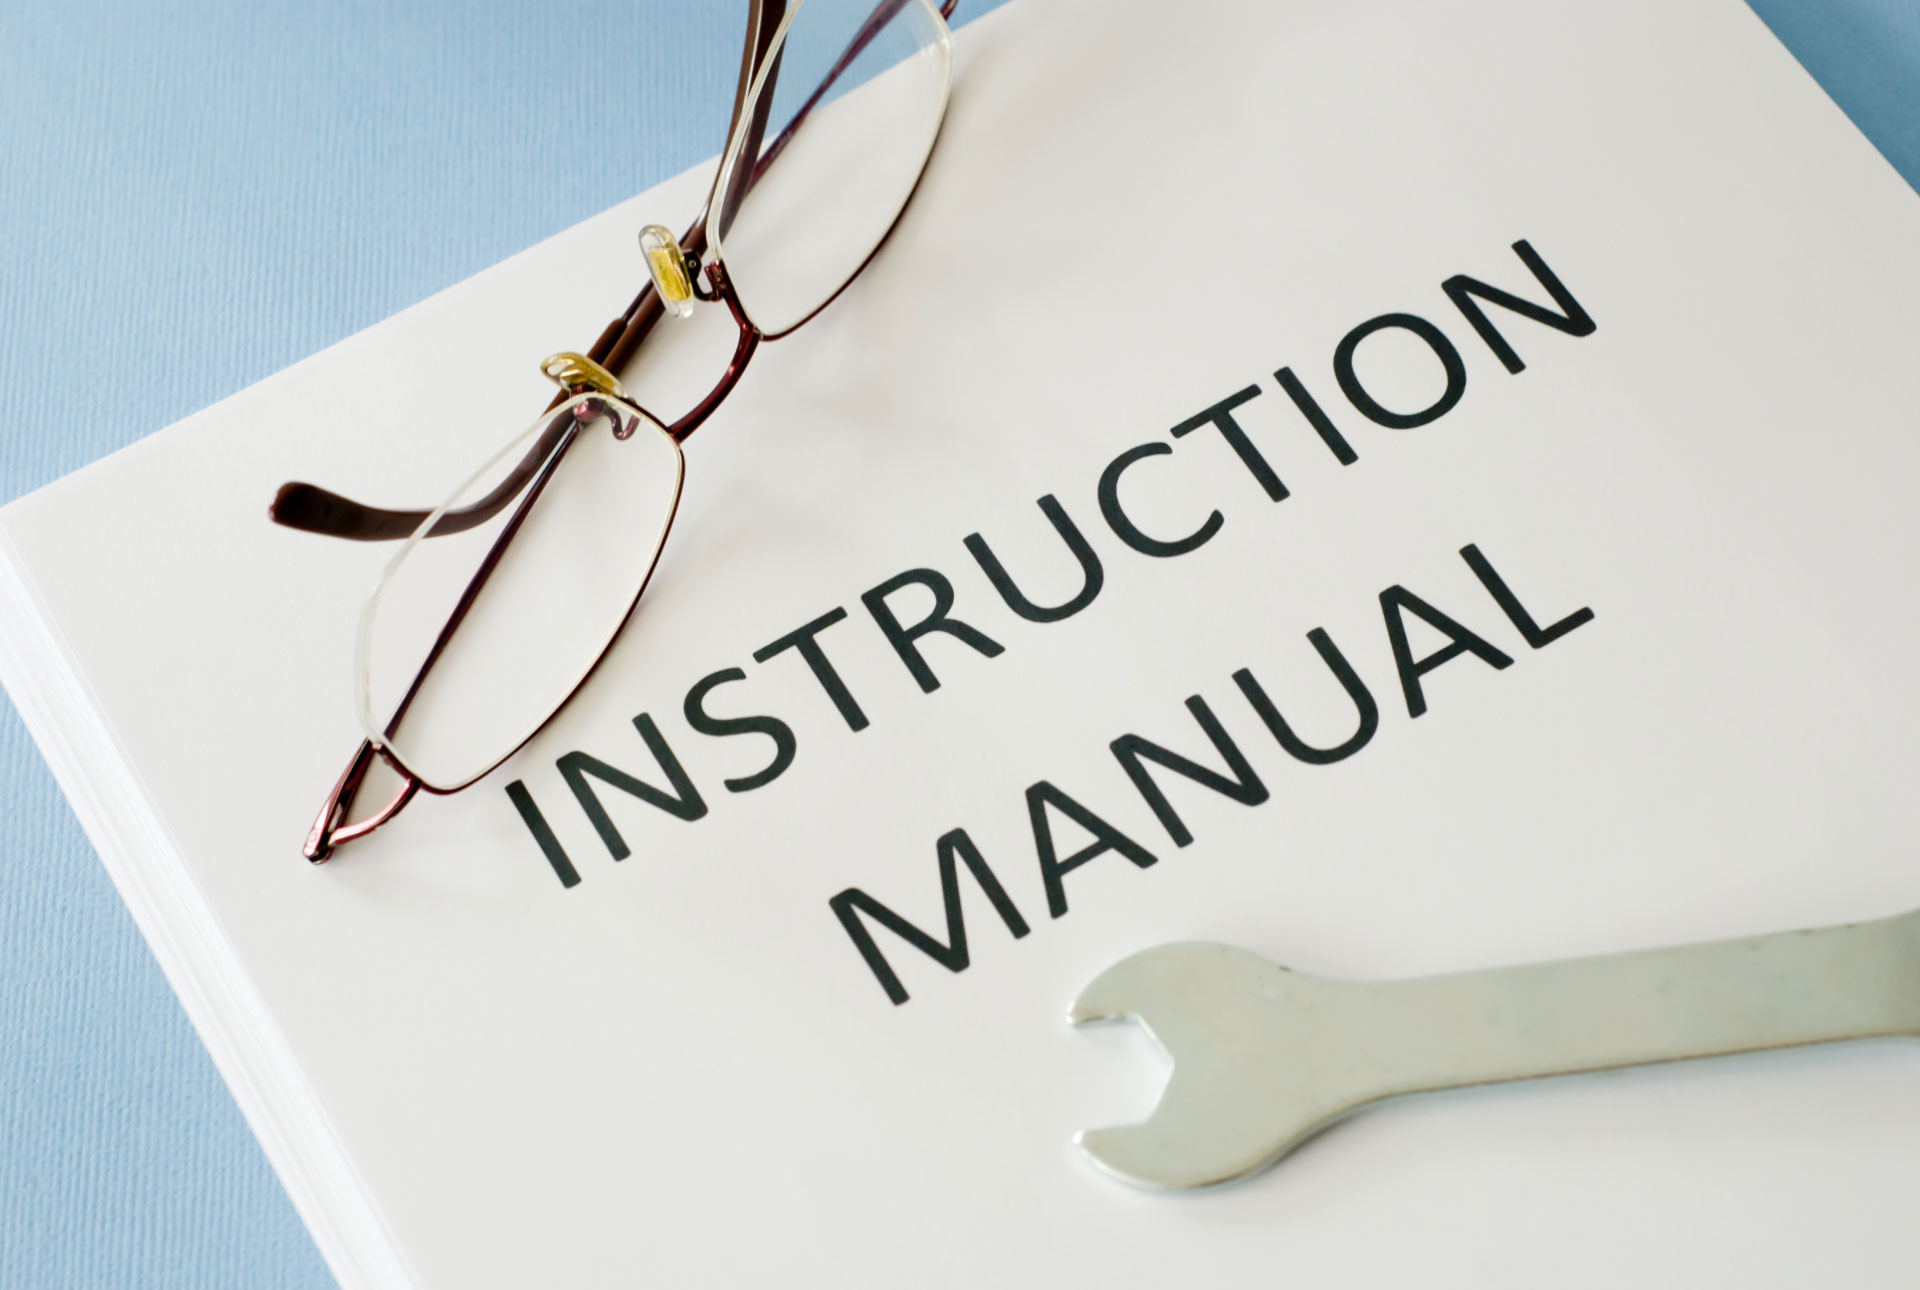 White instruction manual with a pair of spectacle and small wrench placed on top of the cover.